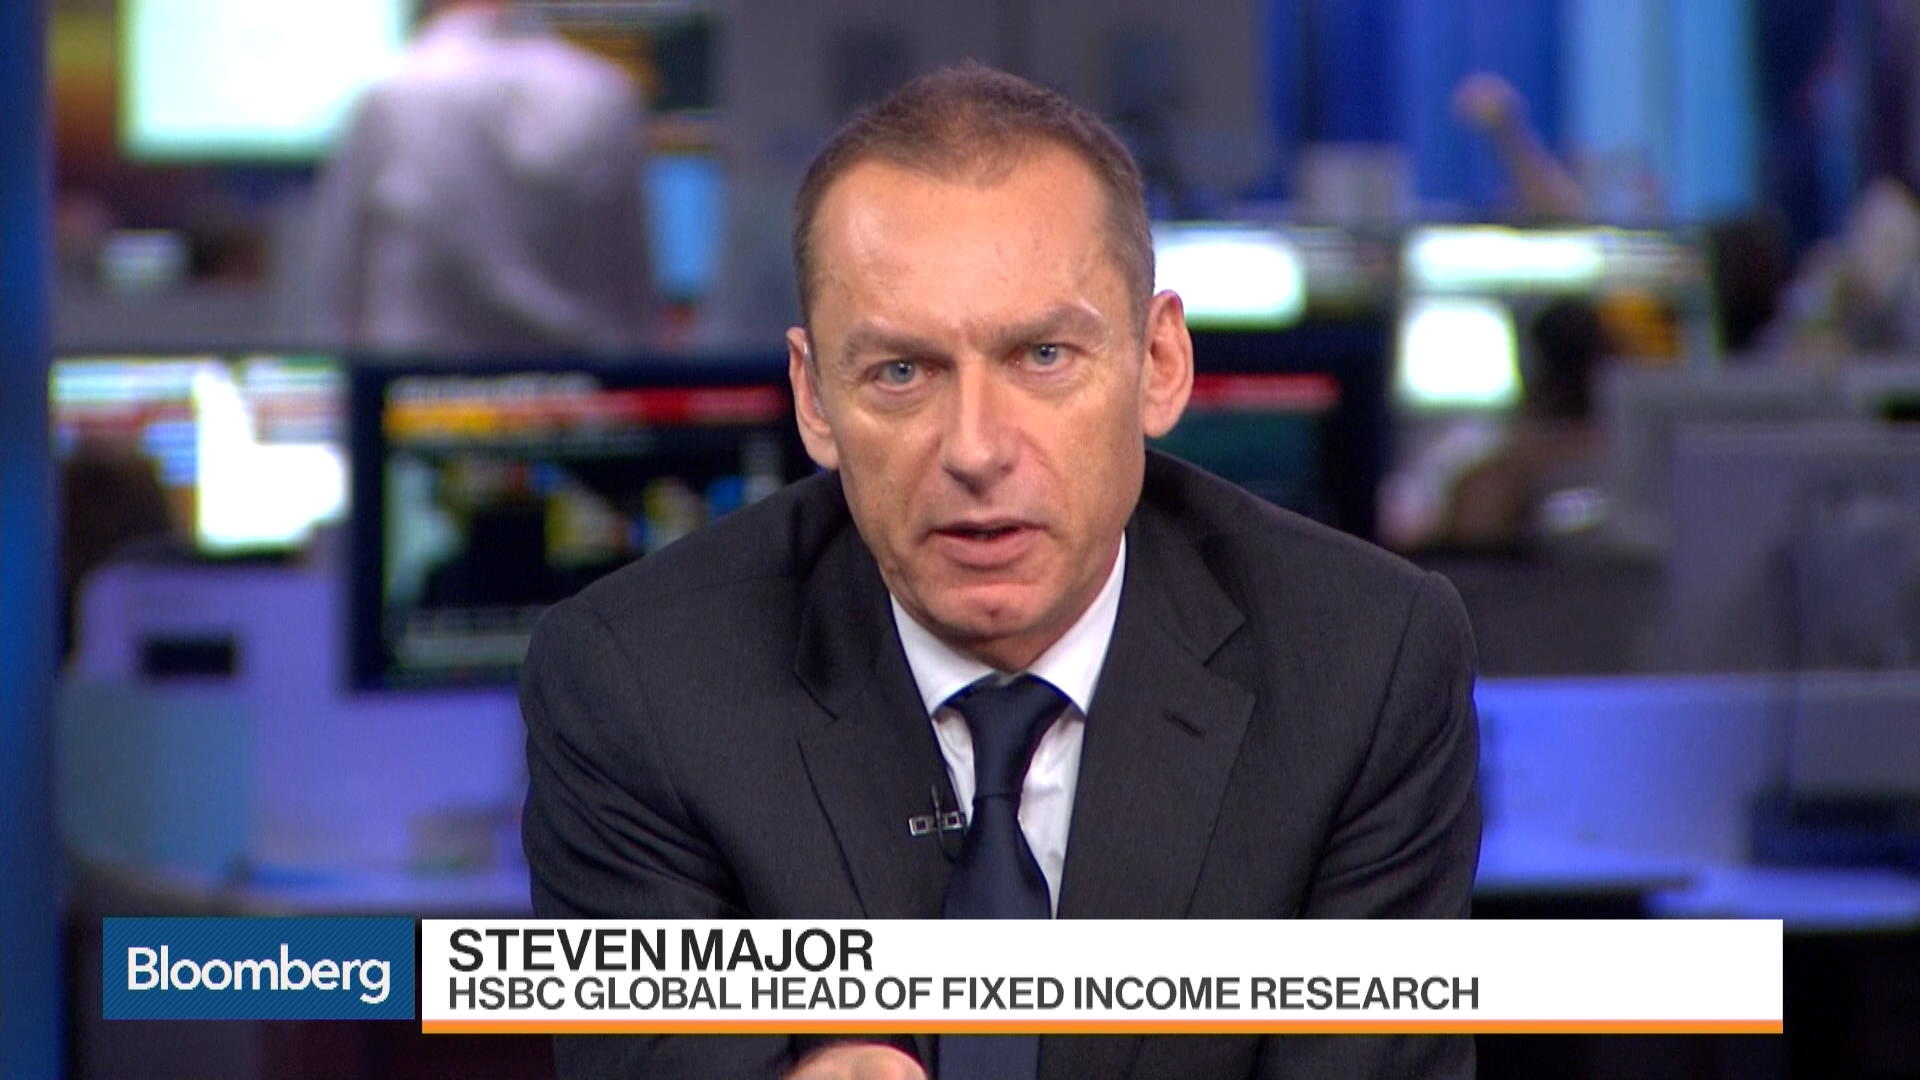 HSBC's Steven Major Shatters Myths of Fixed-Income Market